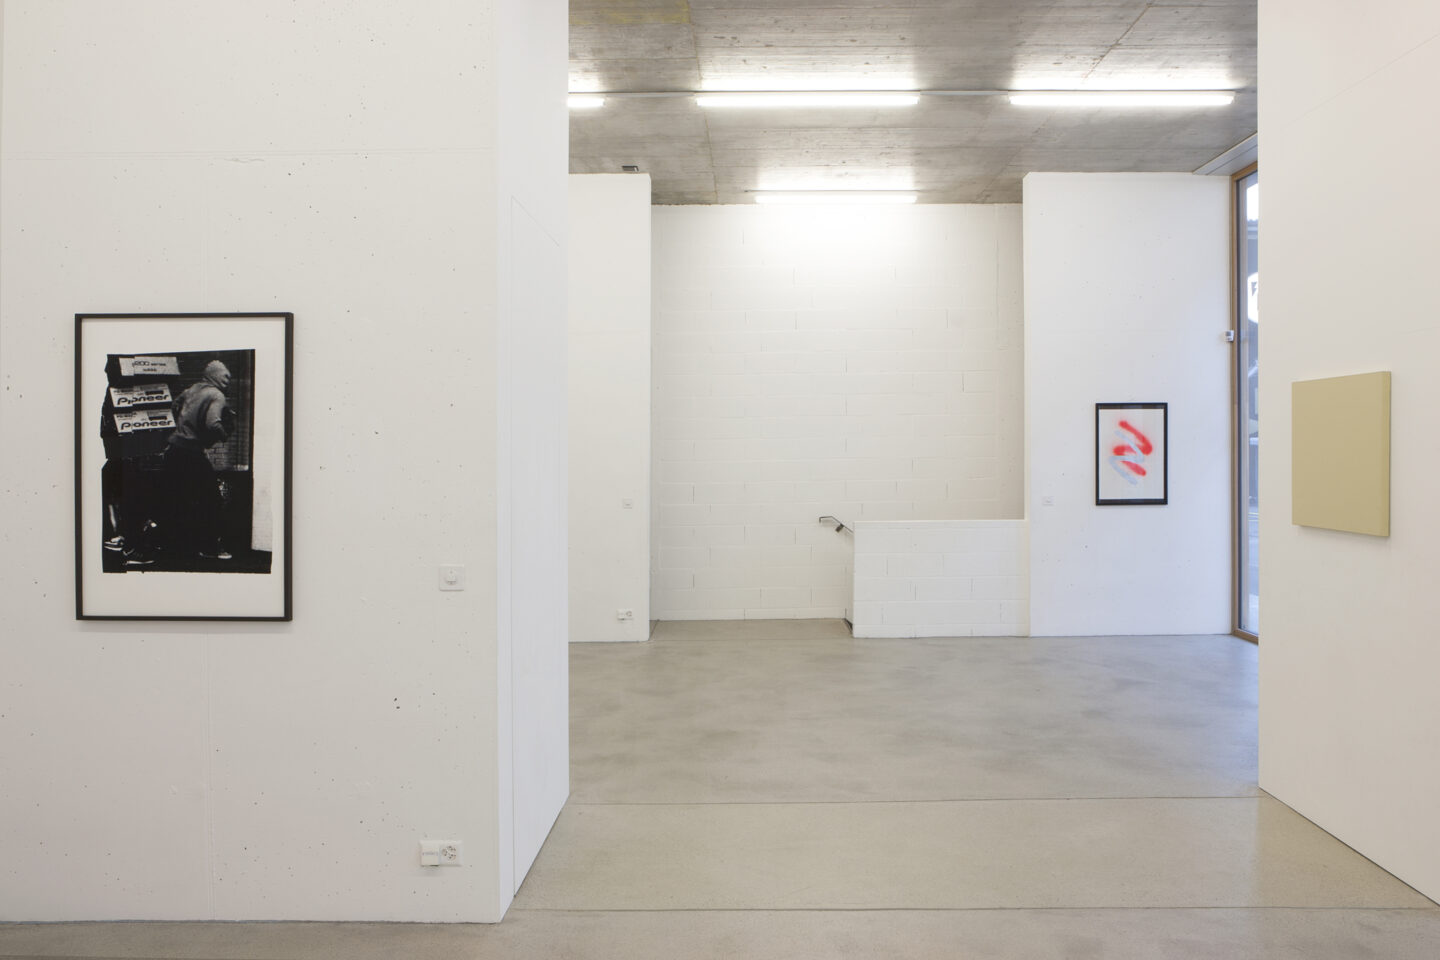 Exhibition View Groupshow «Style Samples; view on Elise Gagnebin-de Bons, Antoine Goudard and Olivier Mosset» at Forma art contemporain, Lausanne / Photo: Shannon Guerrico / Courtesy: the artist, Forma, Locus Solus and Lange + Pult